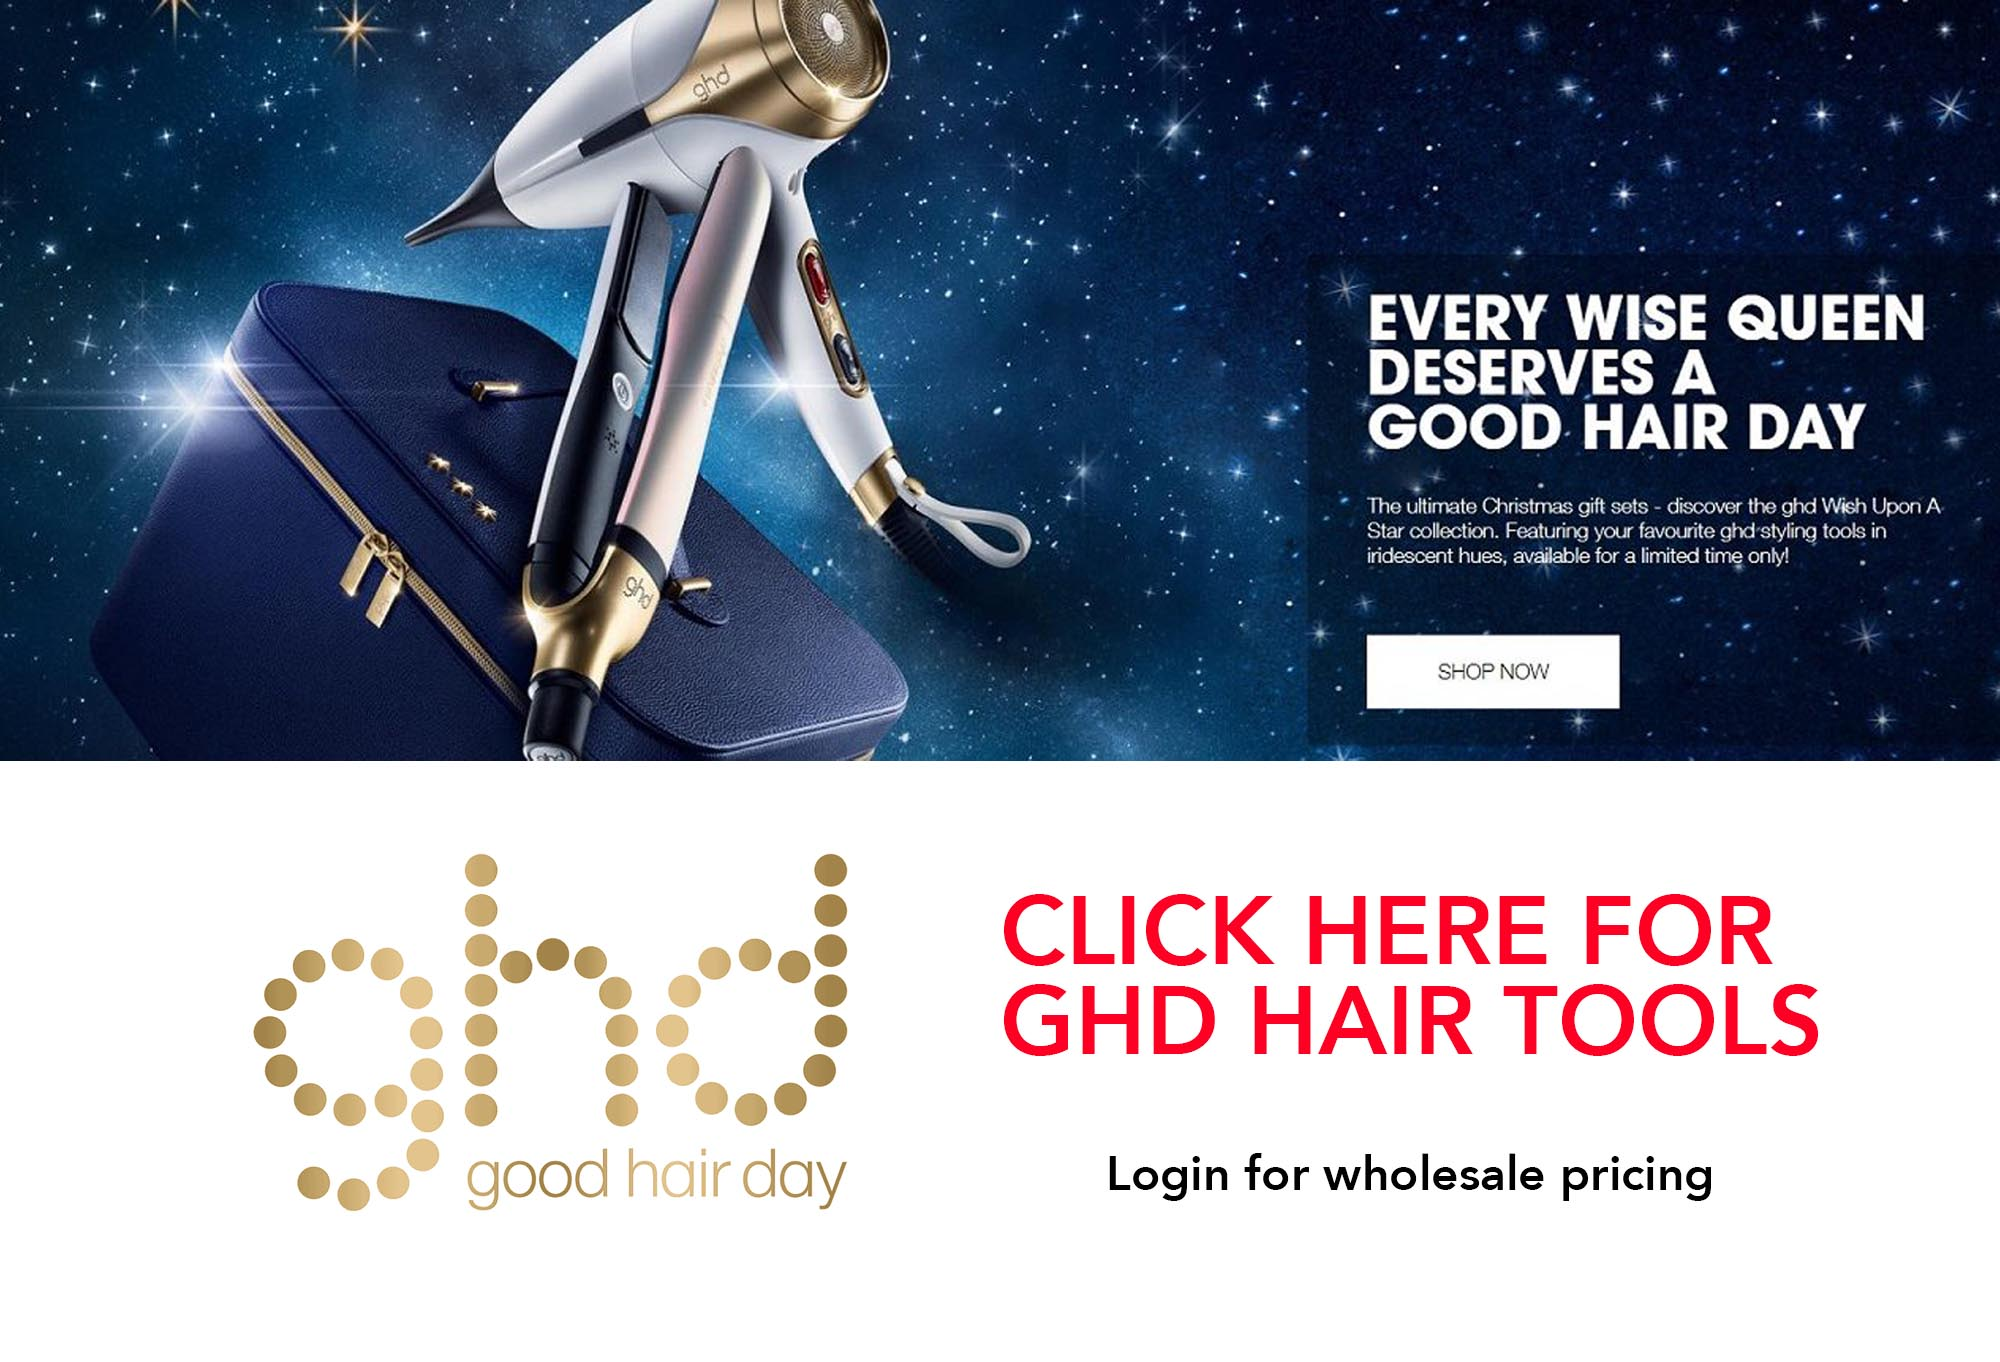 Full range and authorised stockist of GHD Hair Tools, Straighteners, Dryers, Irons and Retail